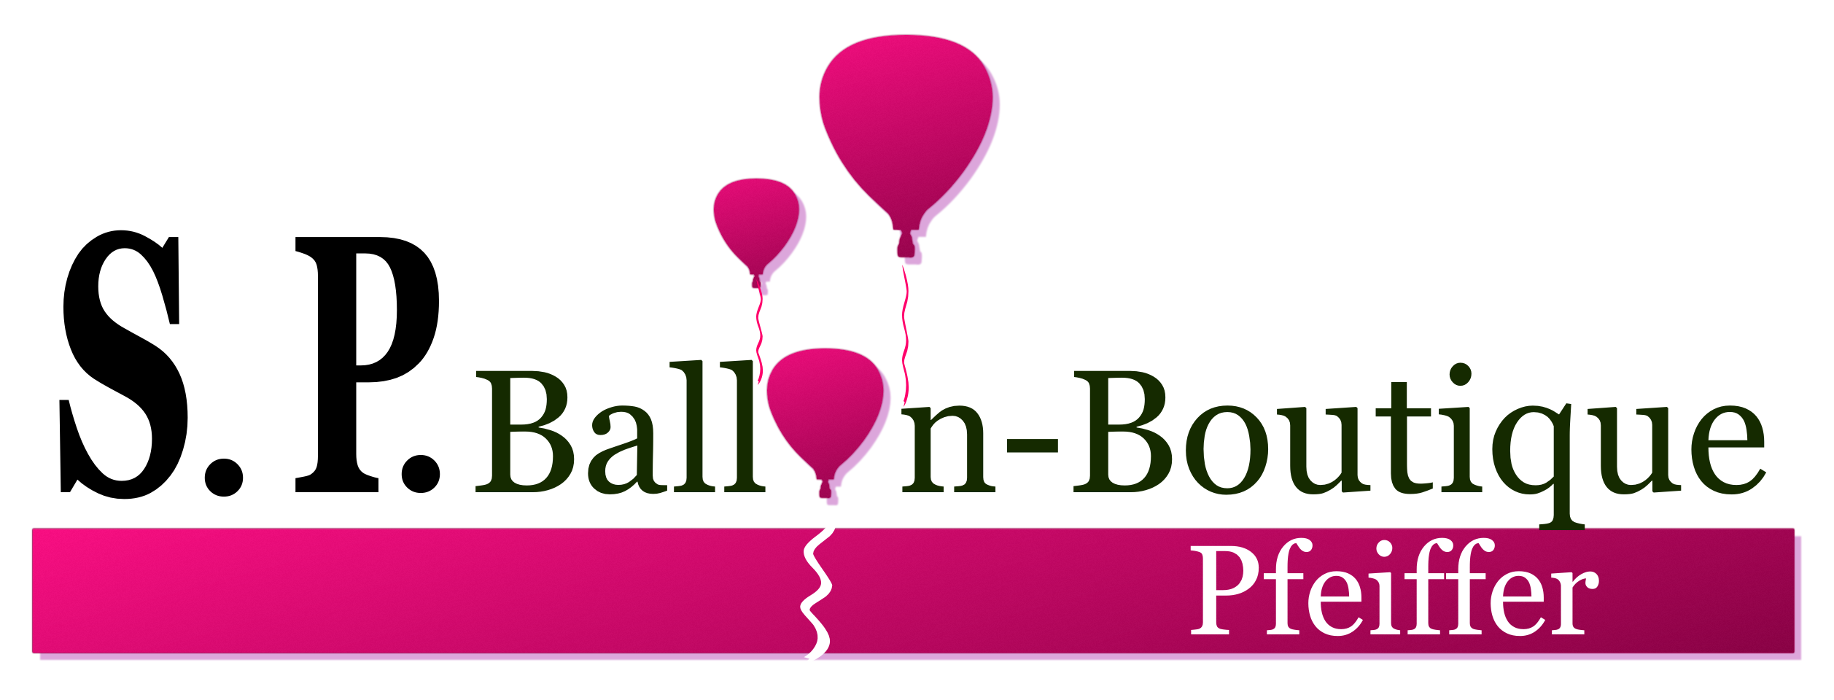 Logo von Ballon Boutique Pfeiffer